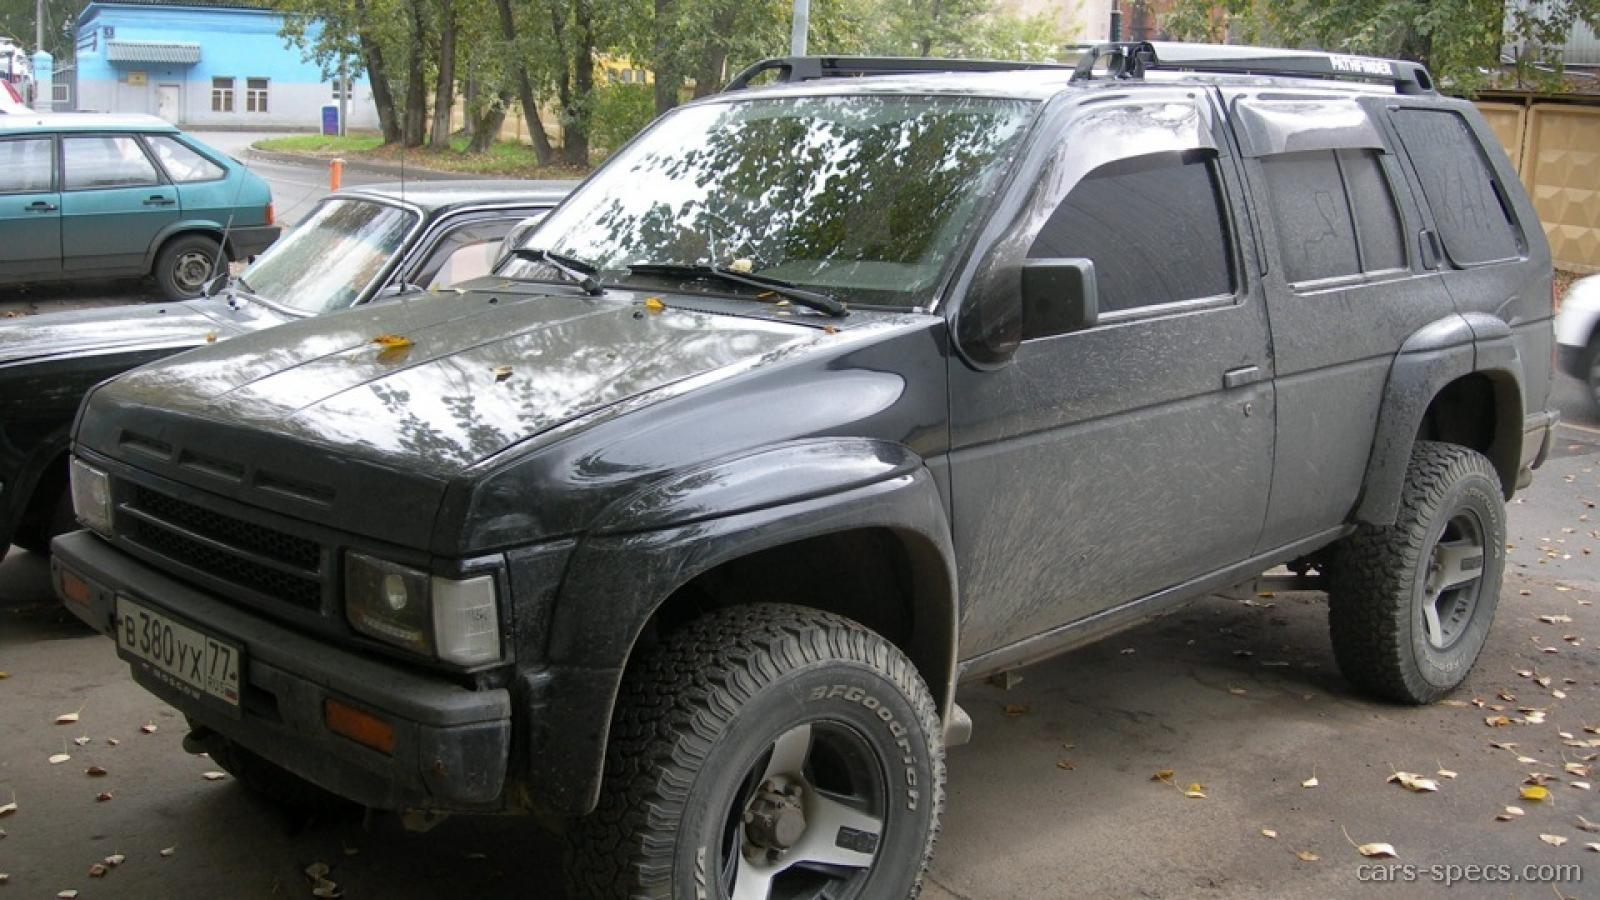 Nissan Pathfinder Source · 1990 Nissan Pathfinder Information And Photos  ZombieDrive